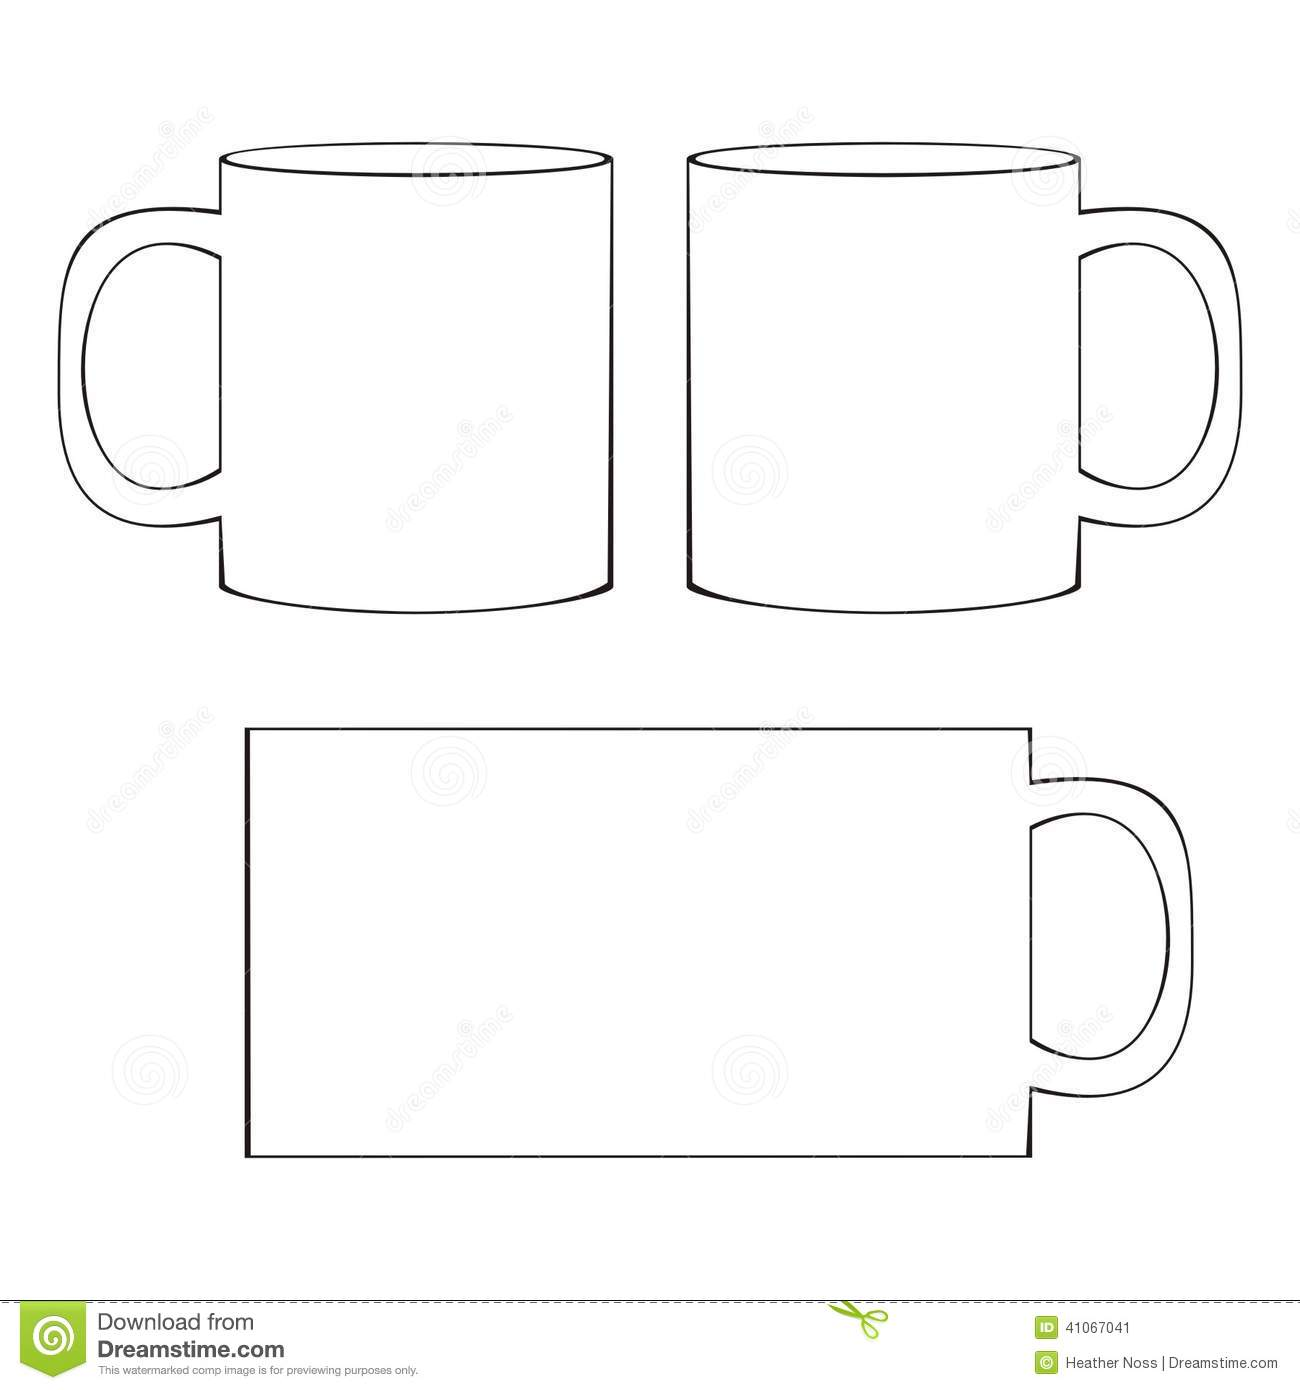 starbucks create your own tumbler blank template - cup design template